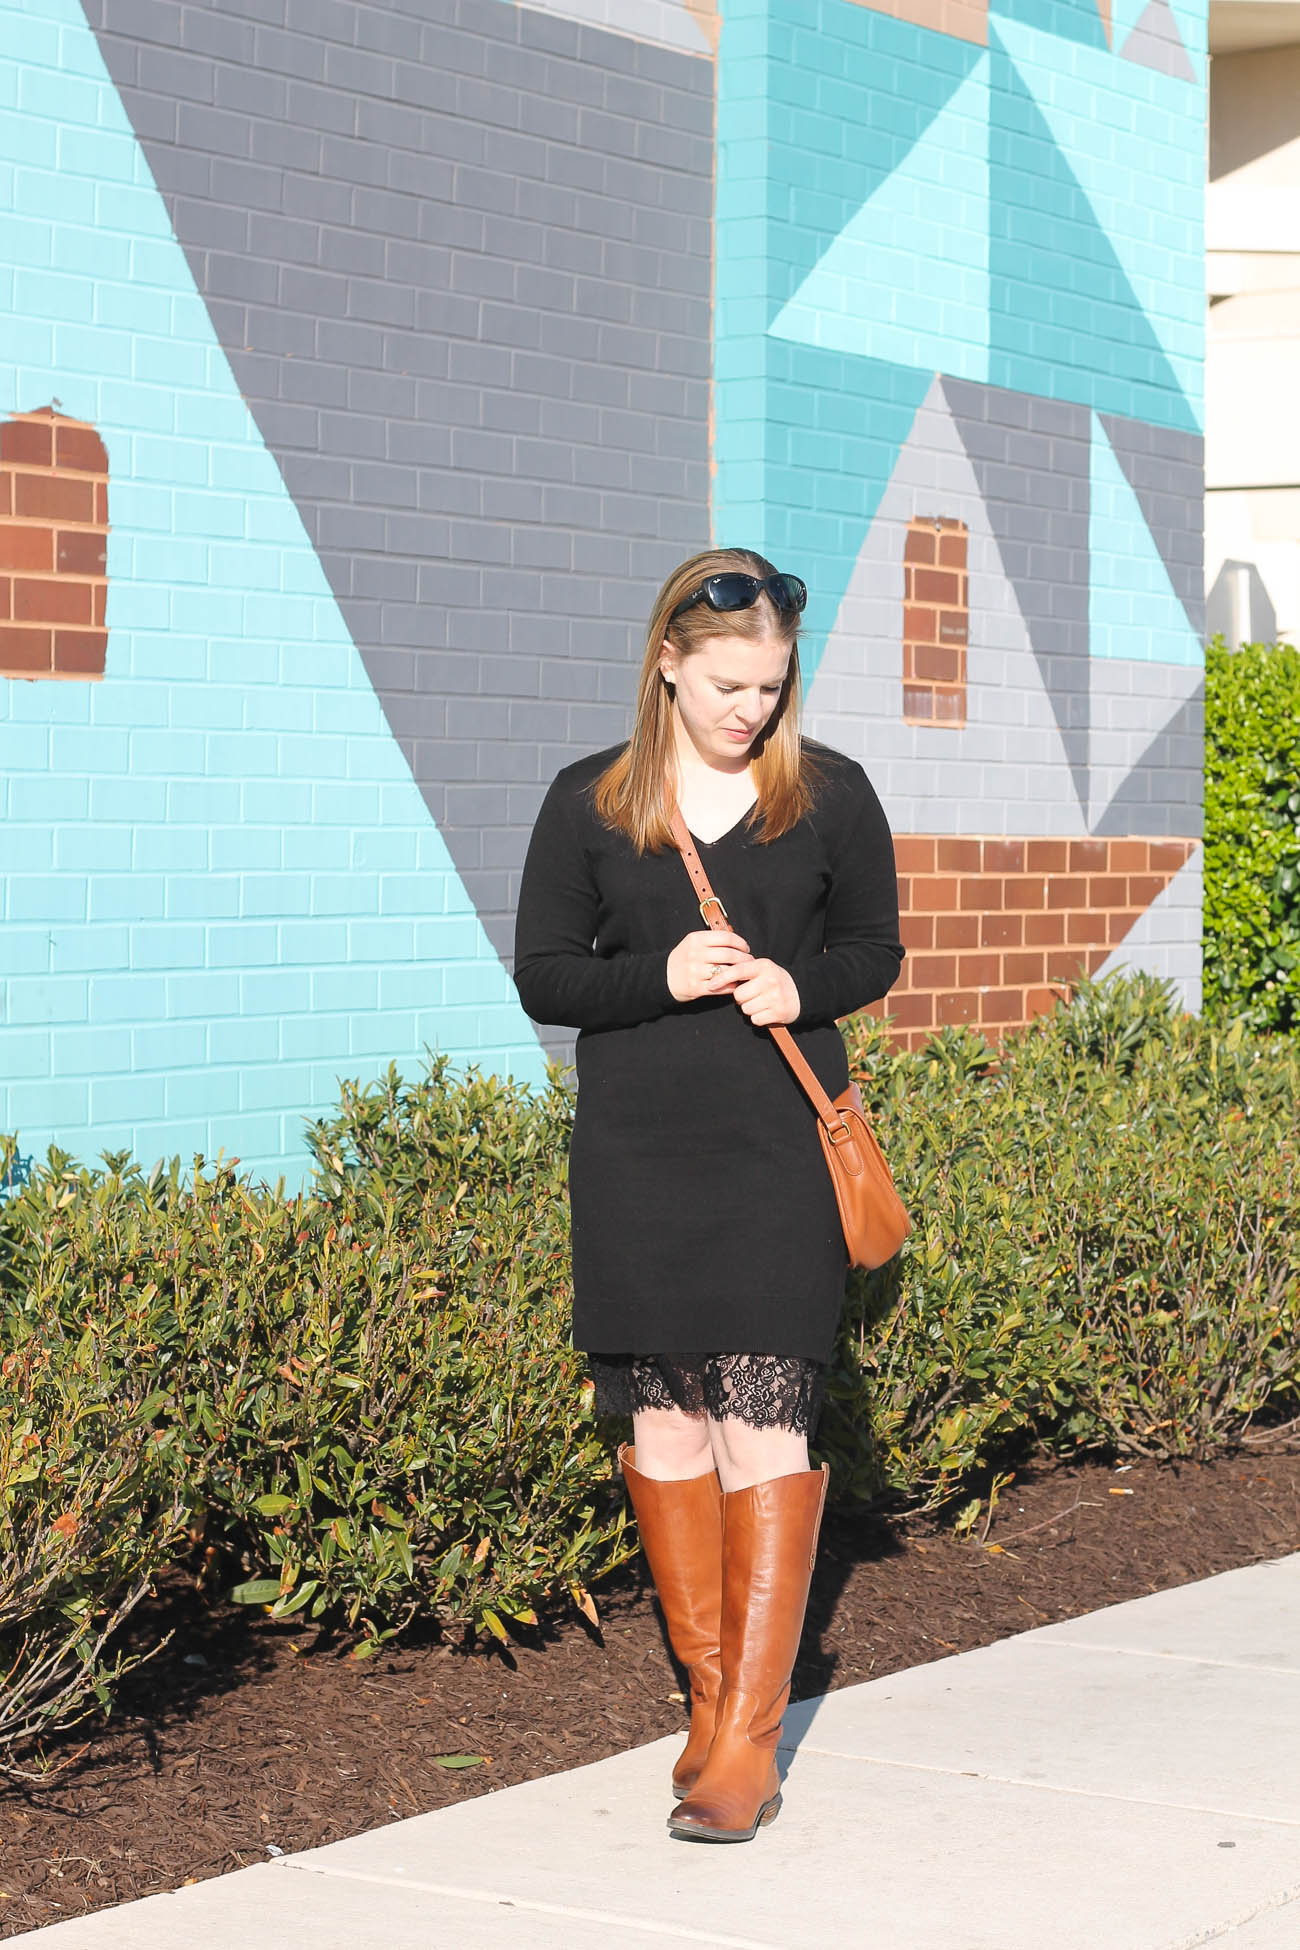 The Sweater Dress | Something Good, @danaerinw, joe fresh sweater dress, v neck black sweater dress, lace bottom dress, coach bag, crossbody bag, sam edelman penny riding boots, cognac riding boots, women, fashion, clothing, style, clothes, fall fashion, women's fashion